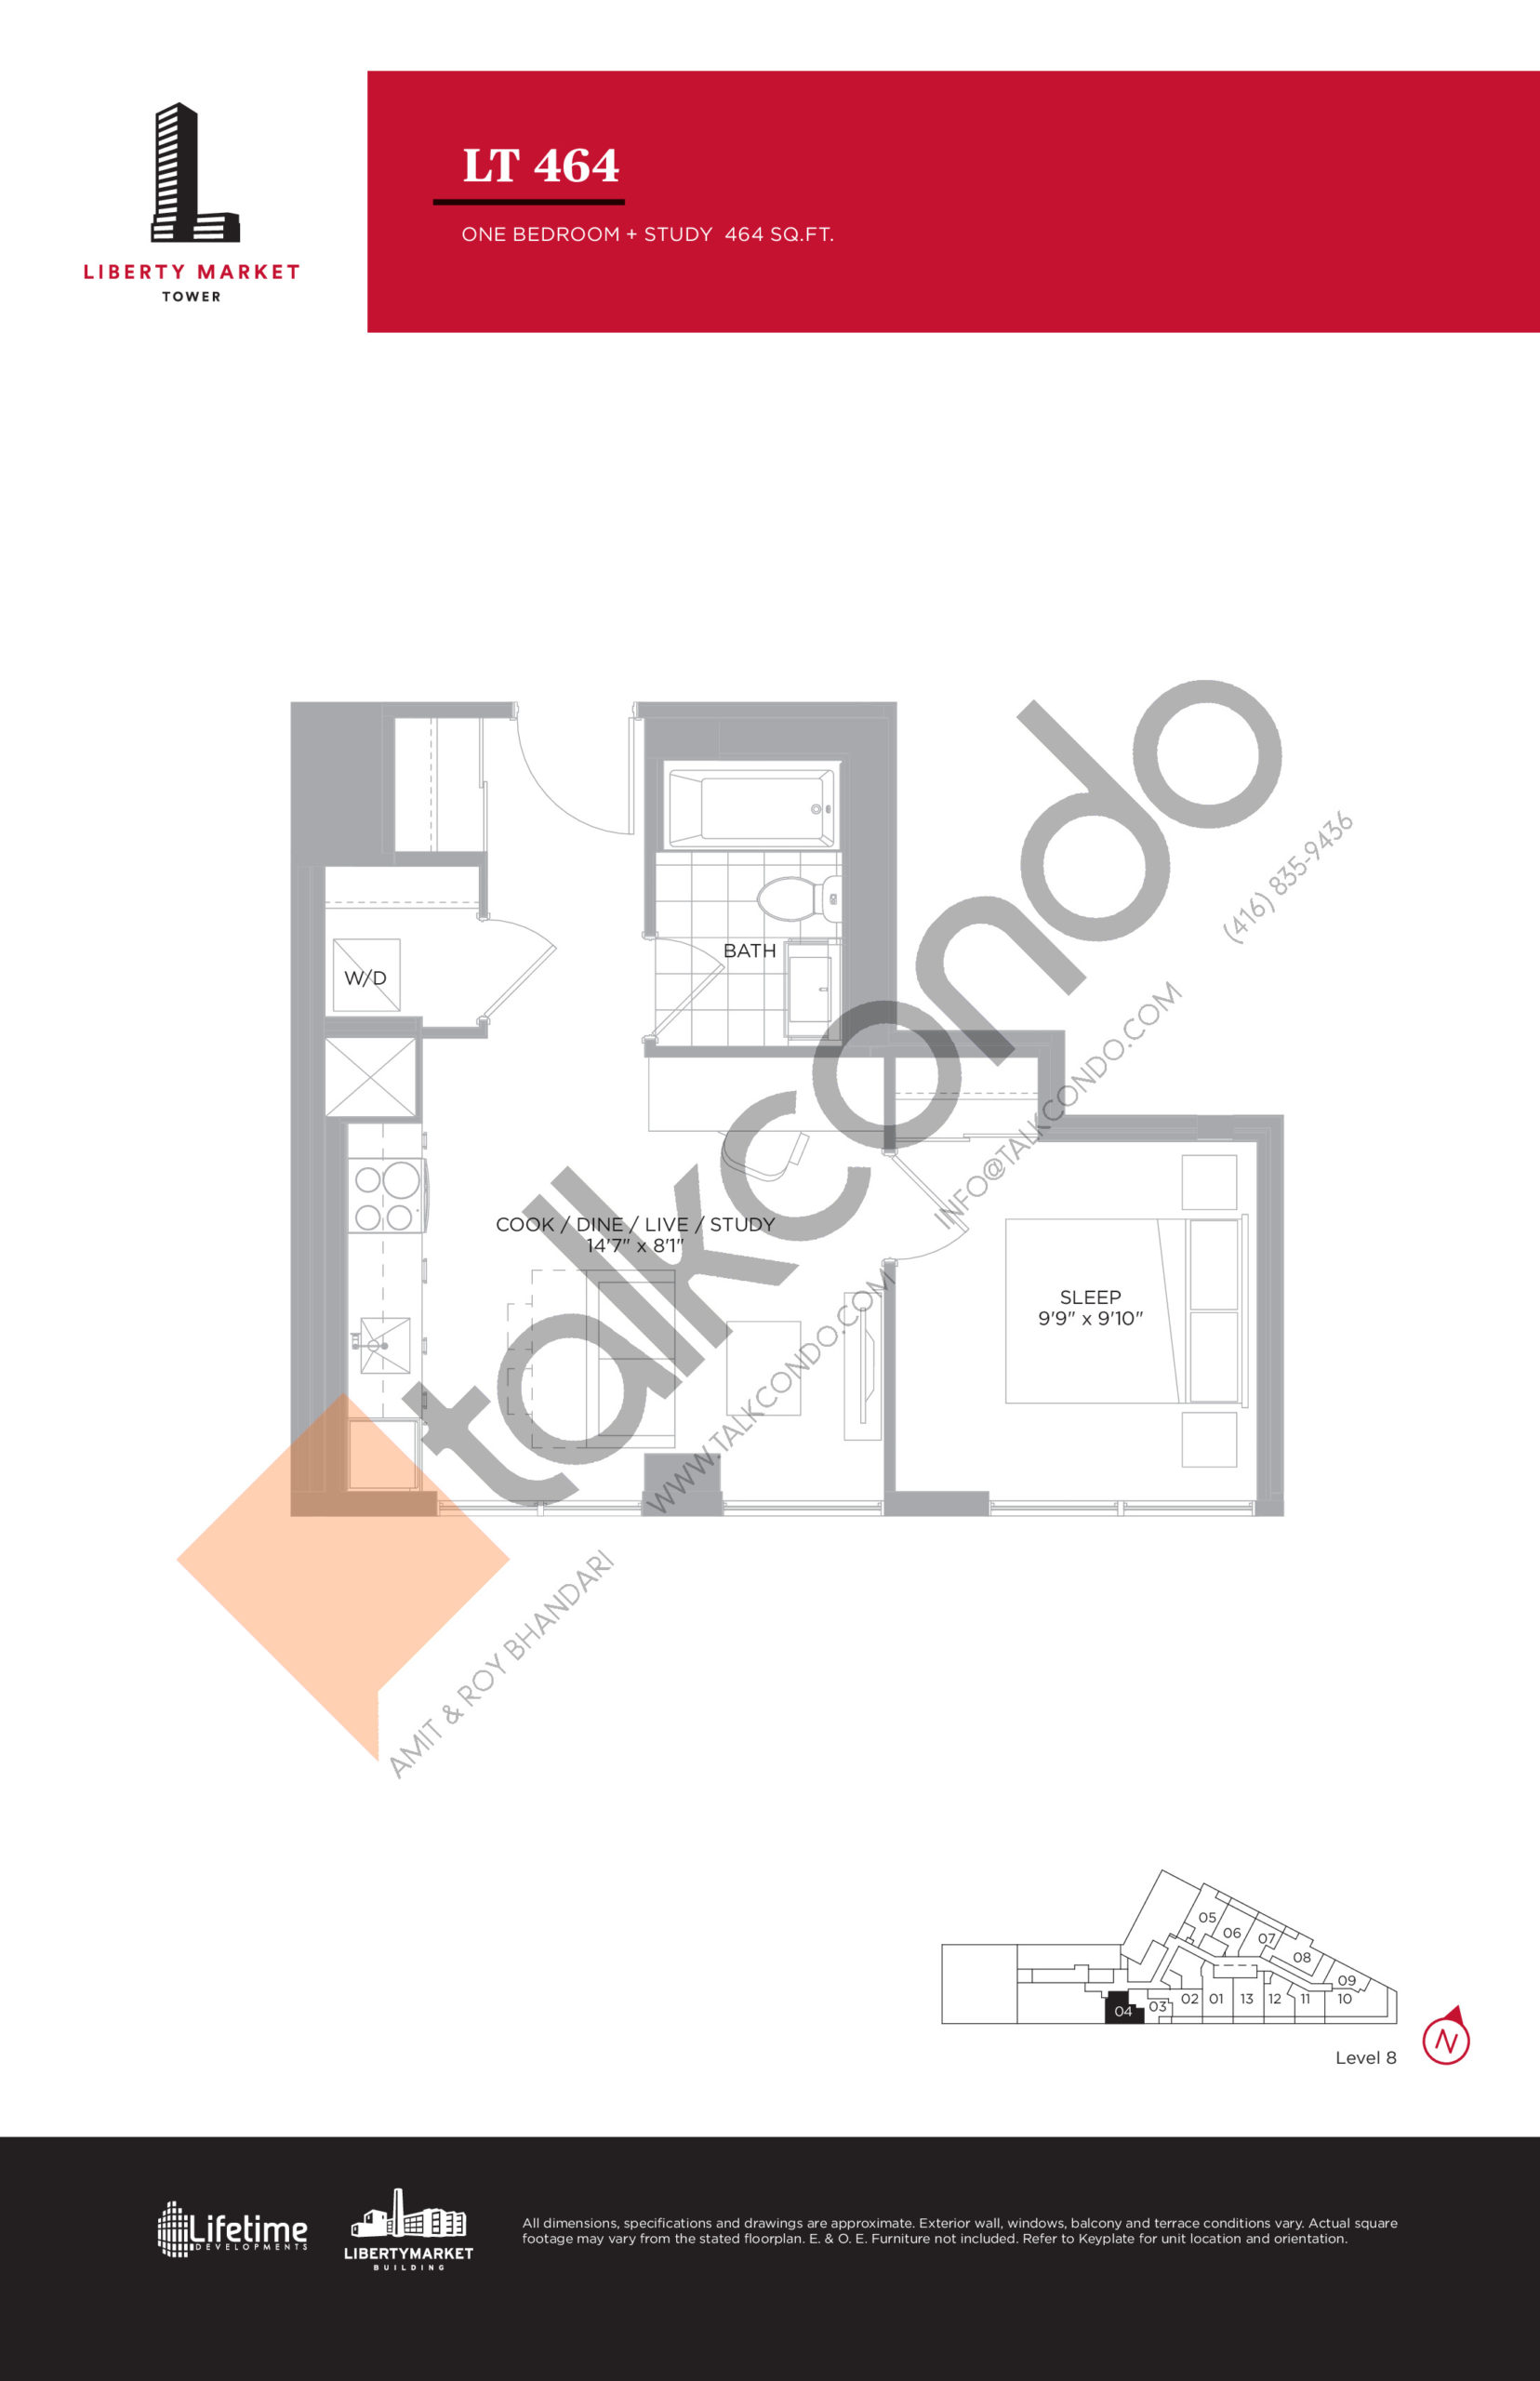 LT 464 - Tower Collection Floor Plan at Liberty Market Tower Condos - 464 sq.ft